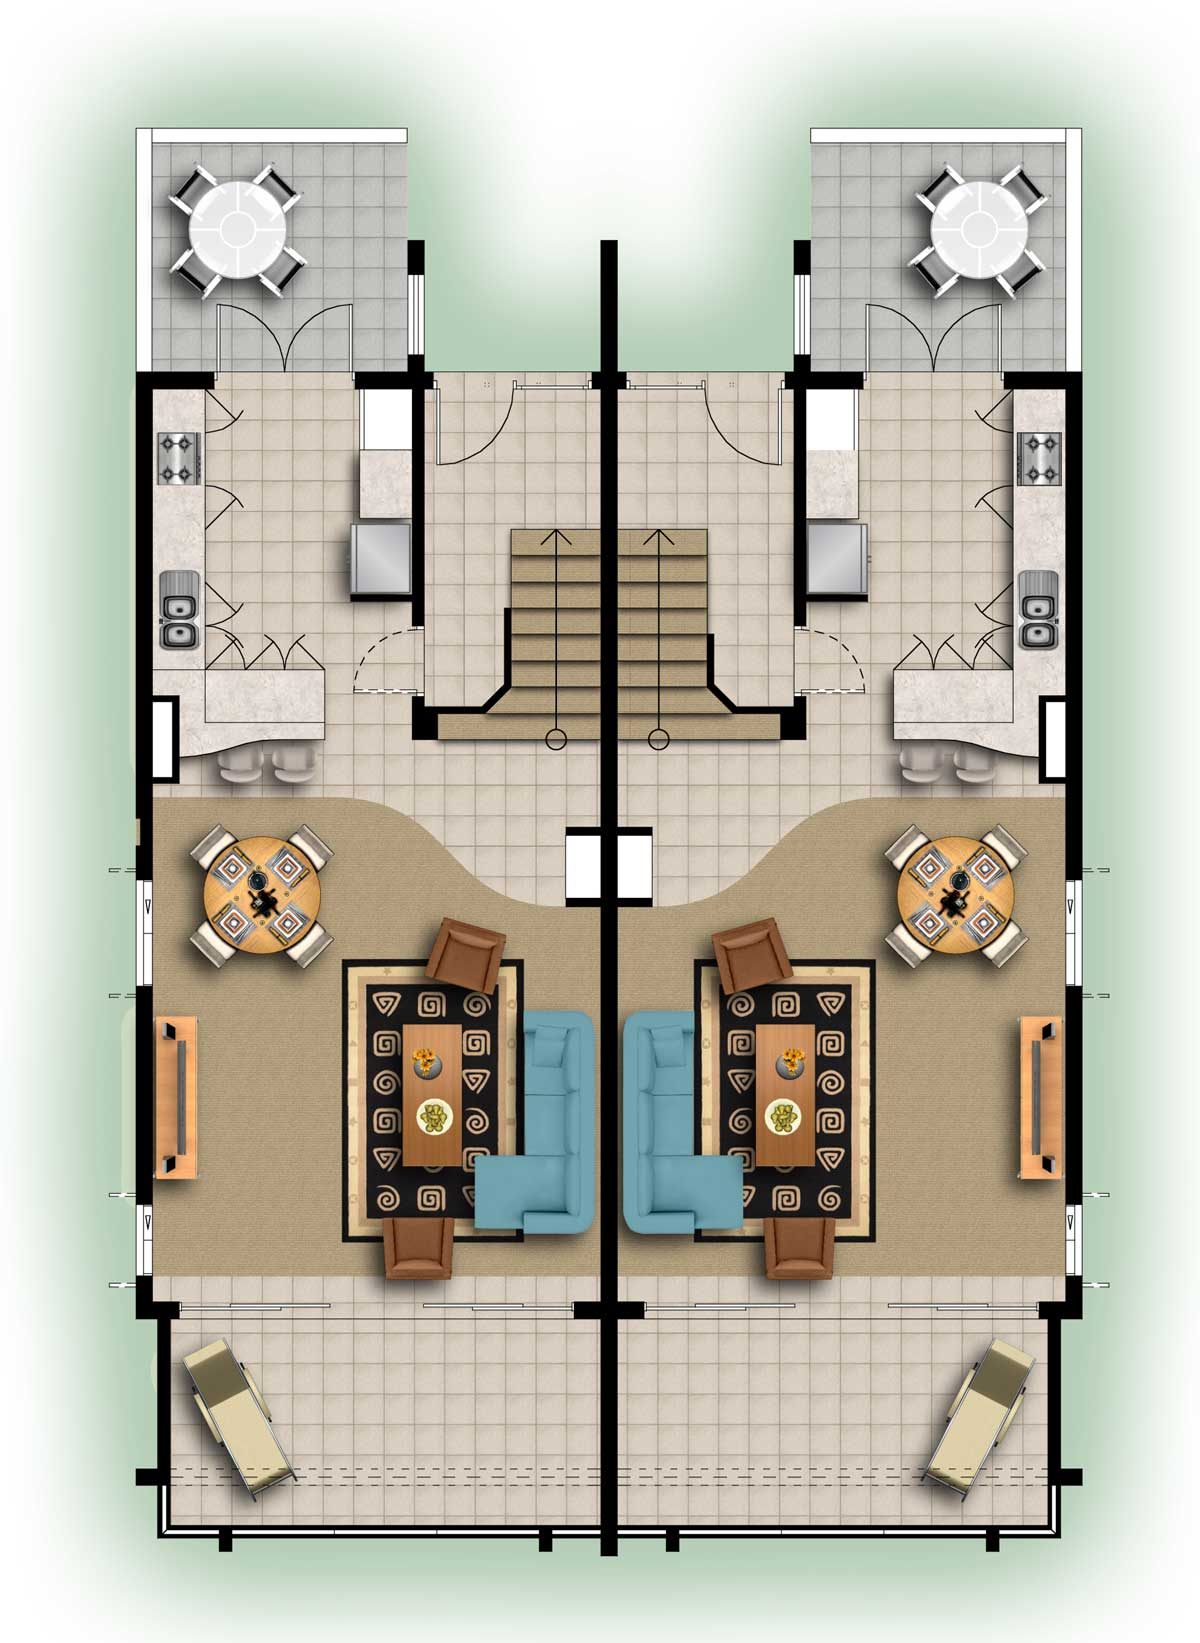 Floor Plans Designs for Homes | HomesFeed